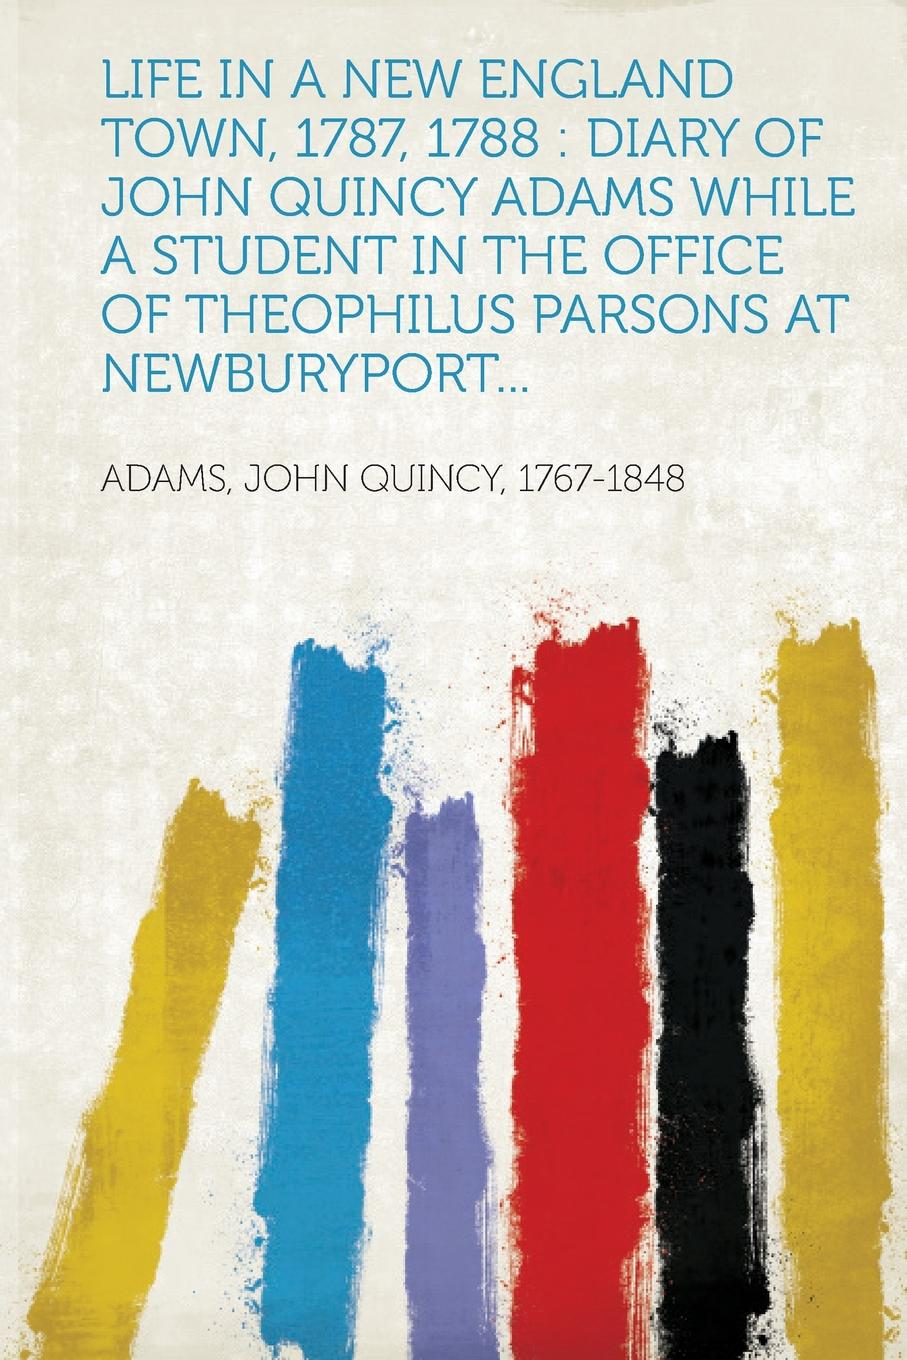 John Quincy Adams Life in a New England town, 1787, 1788. diary of John Quincy Adams while a student in the office of Theophilus Parsons at Newburyport... adams john quincy ex president john quincy adams in pittsburgh in 1843